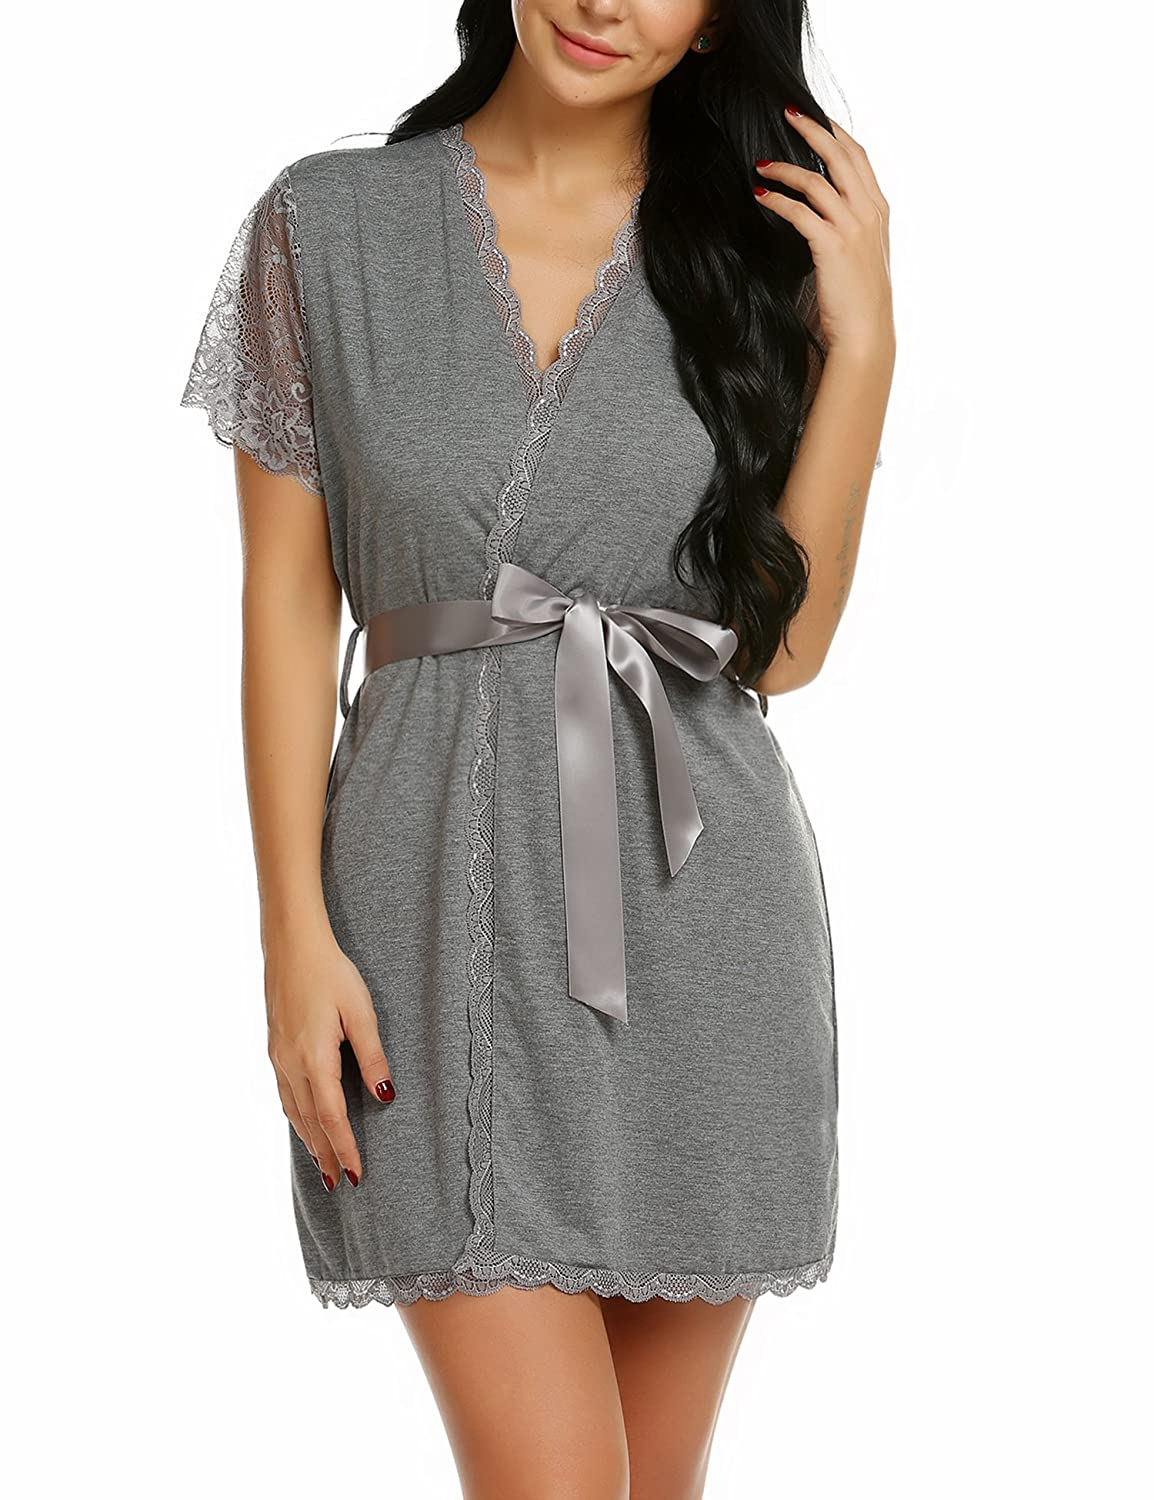 a4a7082d02 This house robe features Belt with Loops on outside to secure firmly - More  Contured Fit than standard Kimono Robes. The cotton kimono robe for women  makes ...